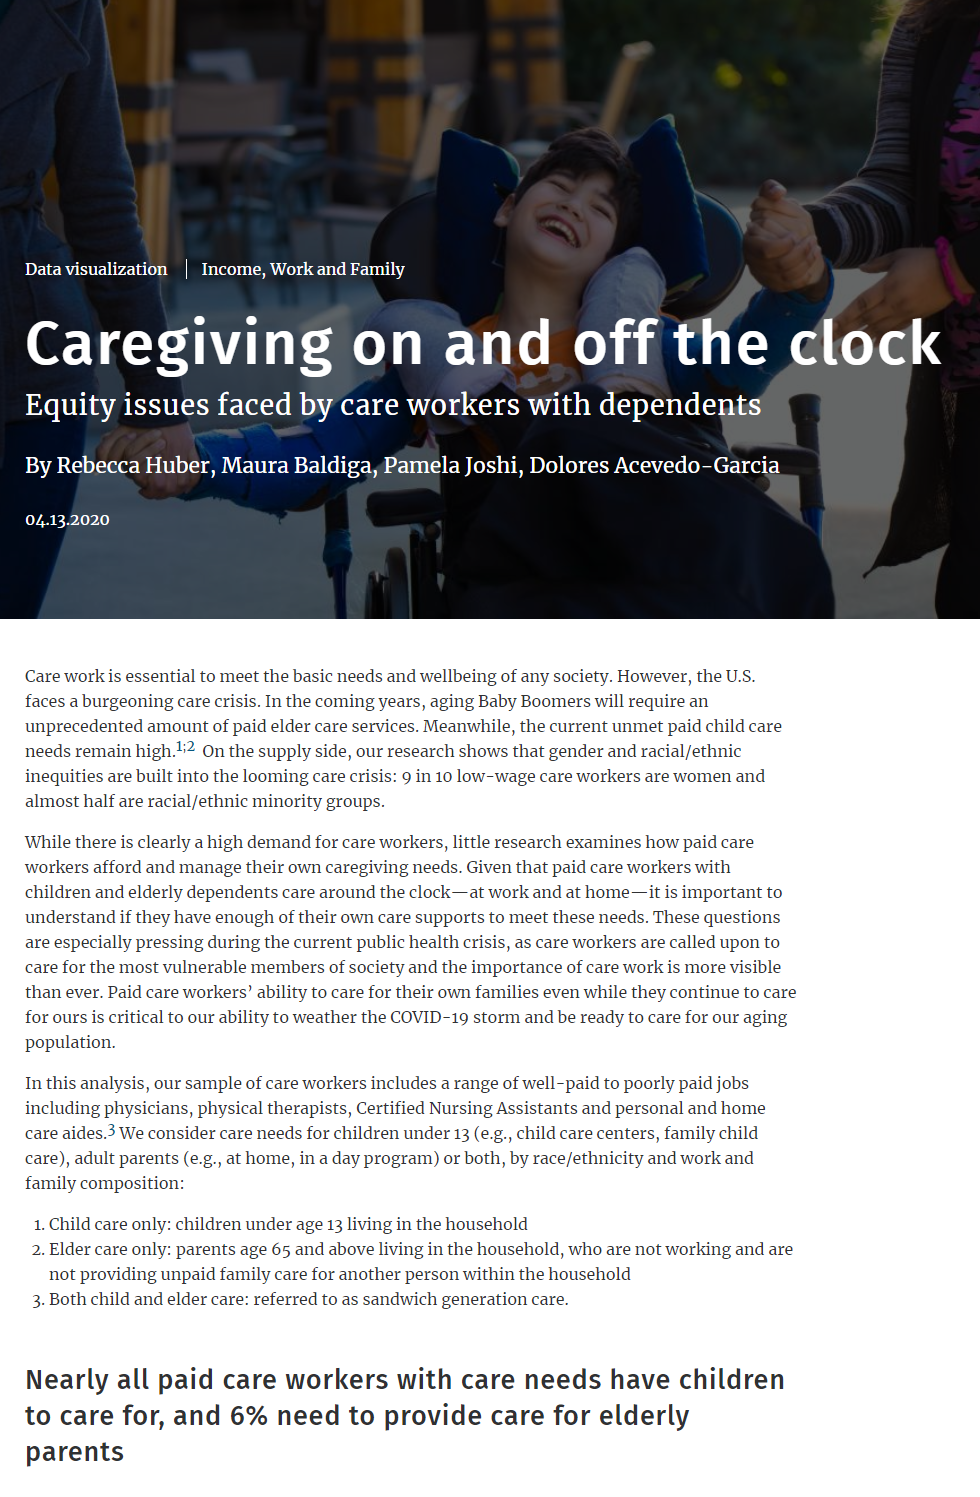 Caregiving On and Off the Clock: Equity Issues Faced by Care Workers with Dependents